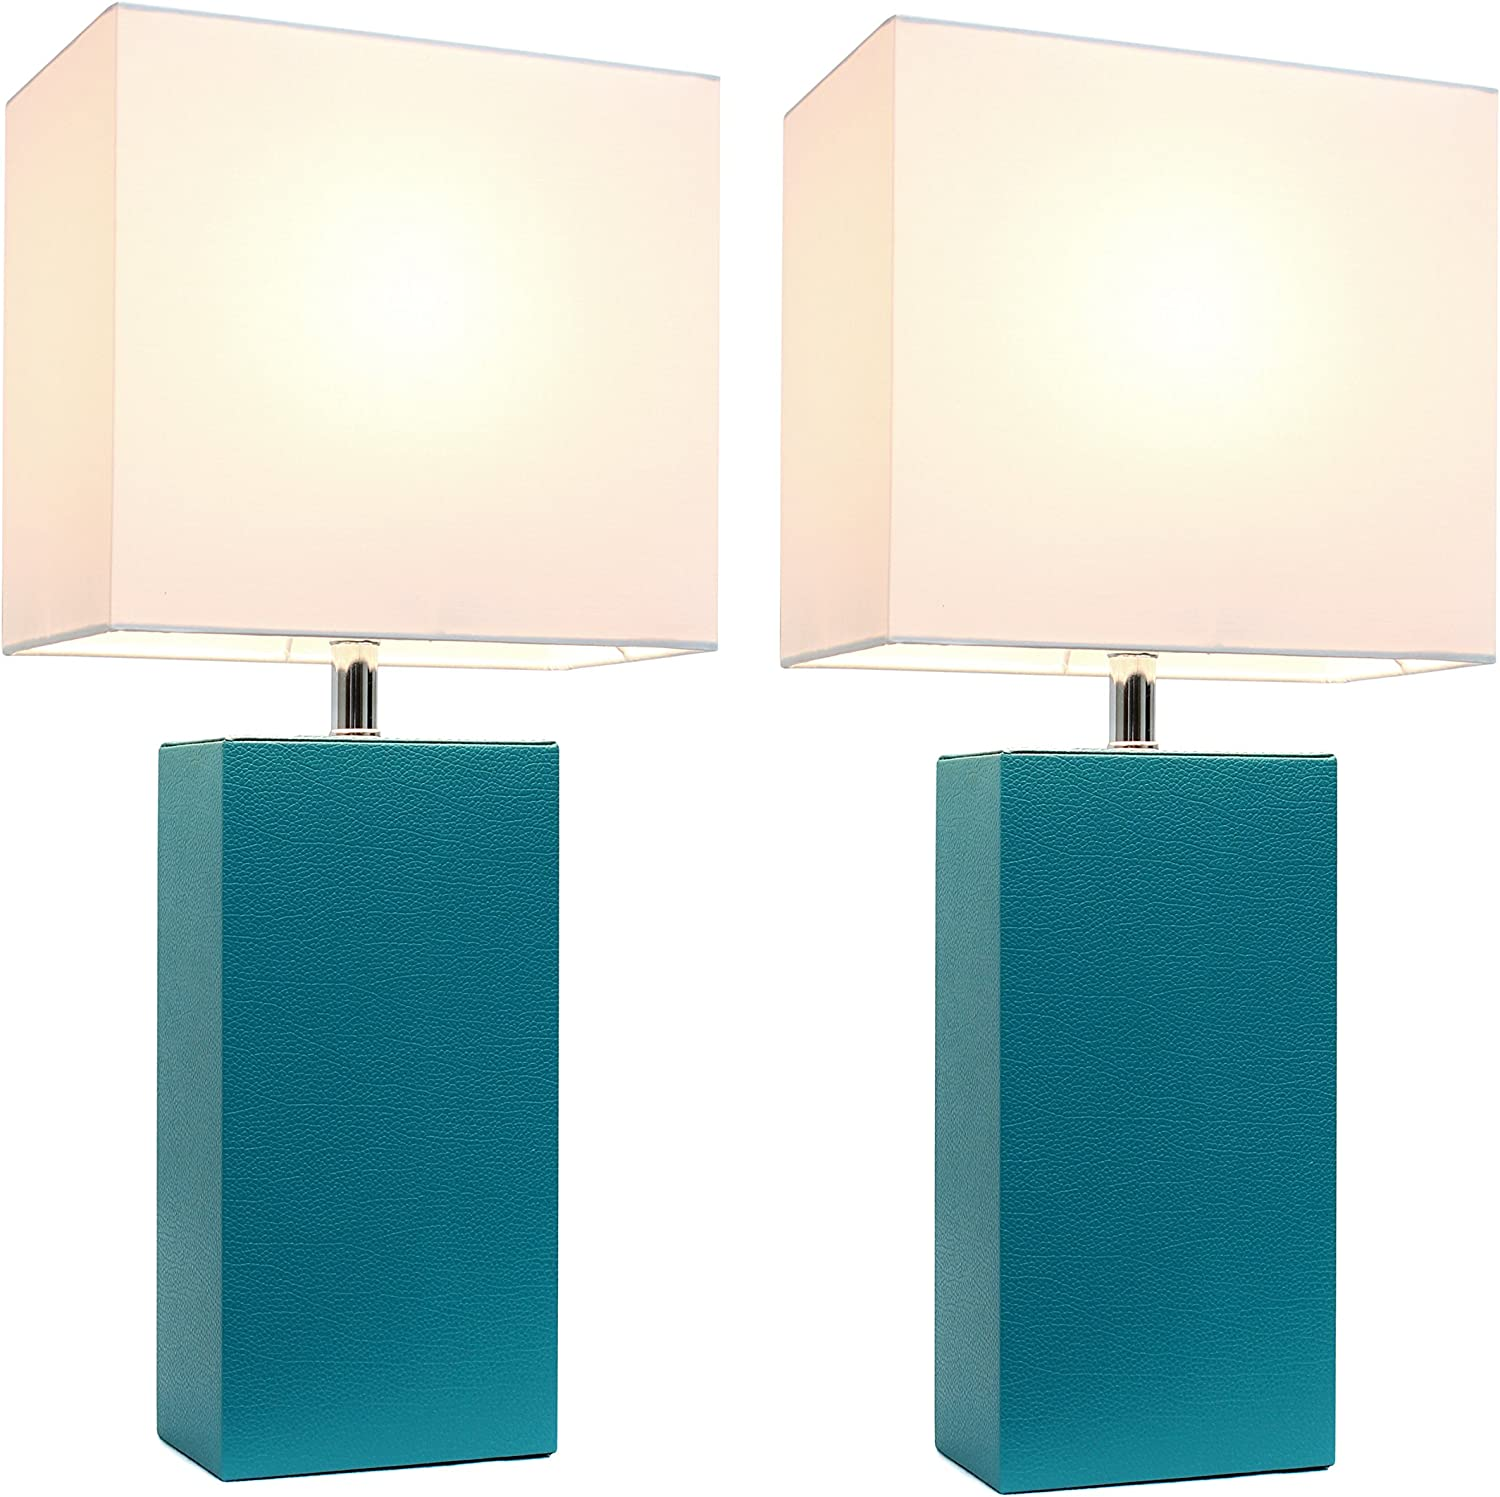 "Elegant Designs LC2000-GRN-2PK 2 Pack Modern Leather Table Lamps with White Fabric Shades, 3.9"", Green Teal"